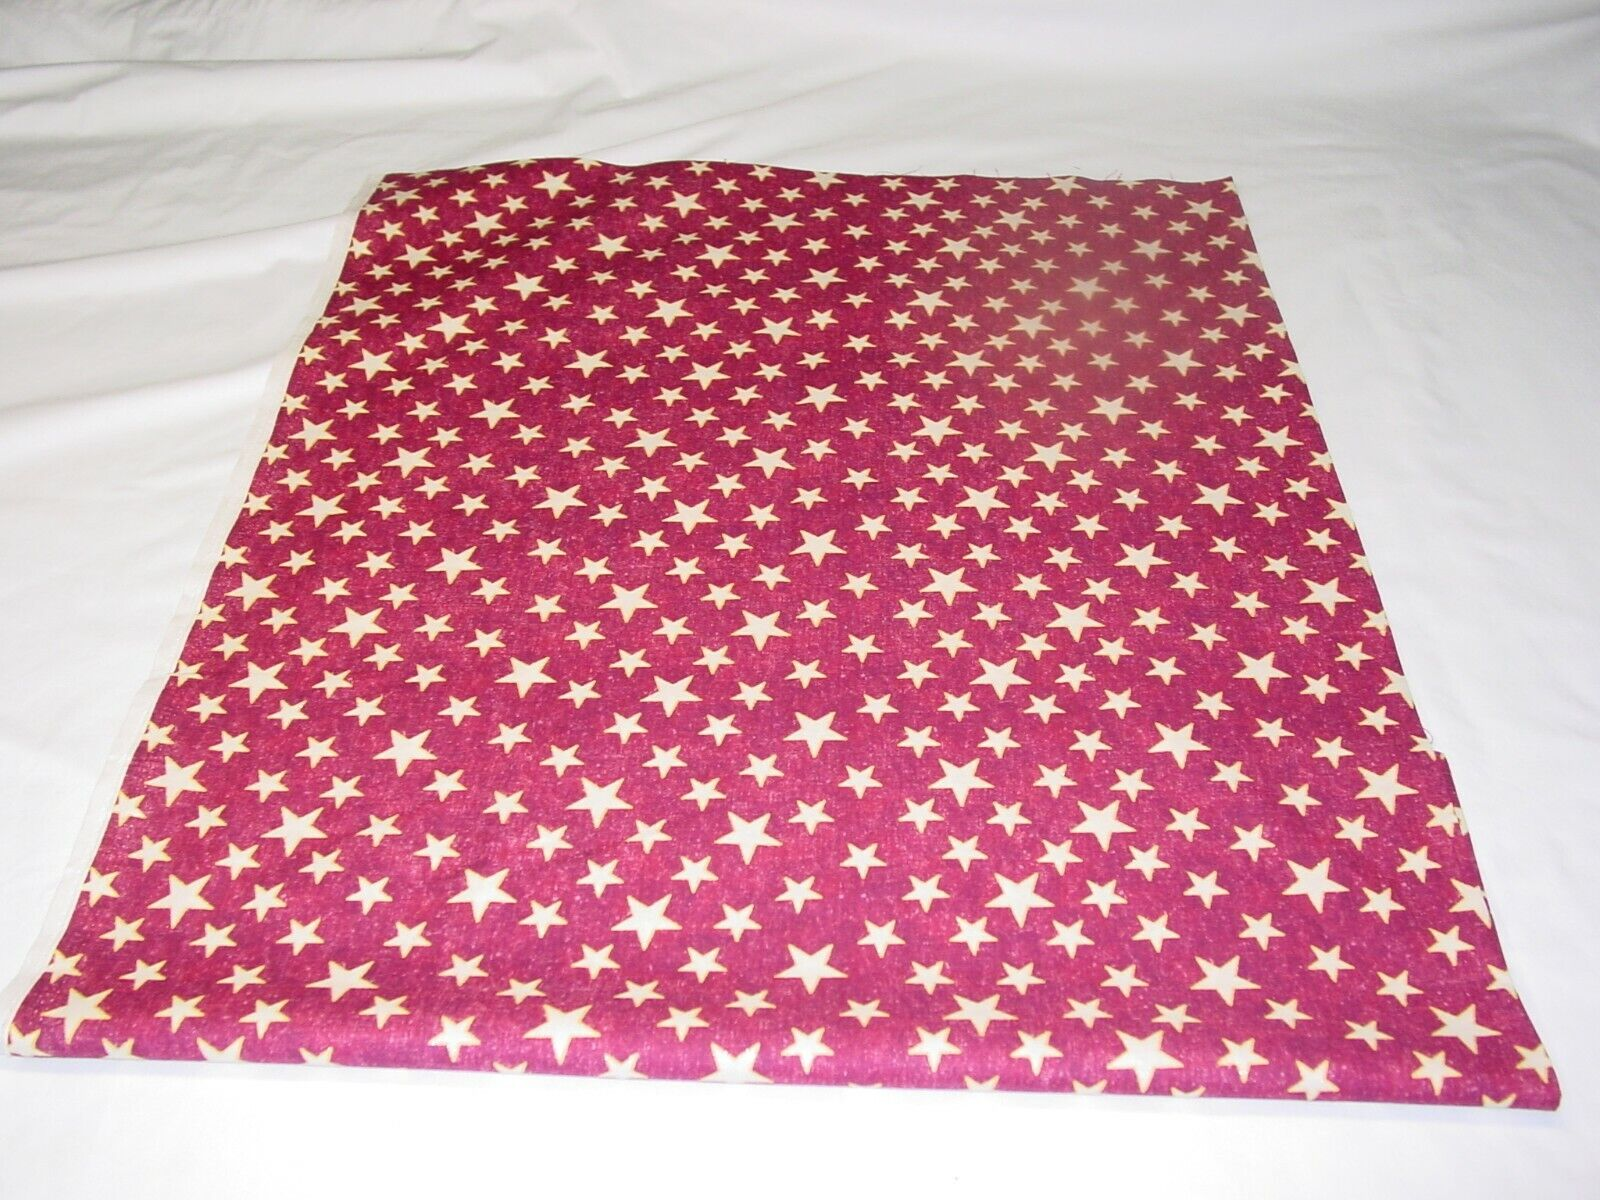 STARS RED WITH GLITTERS FABRIC REMNANTS 100 COTTON LENGTH 32 X W 42  - $9.50